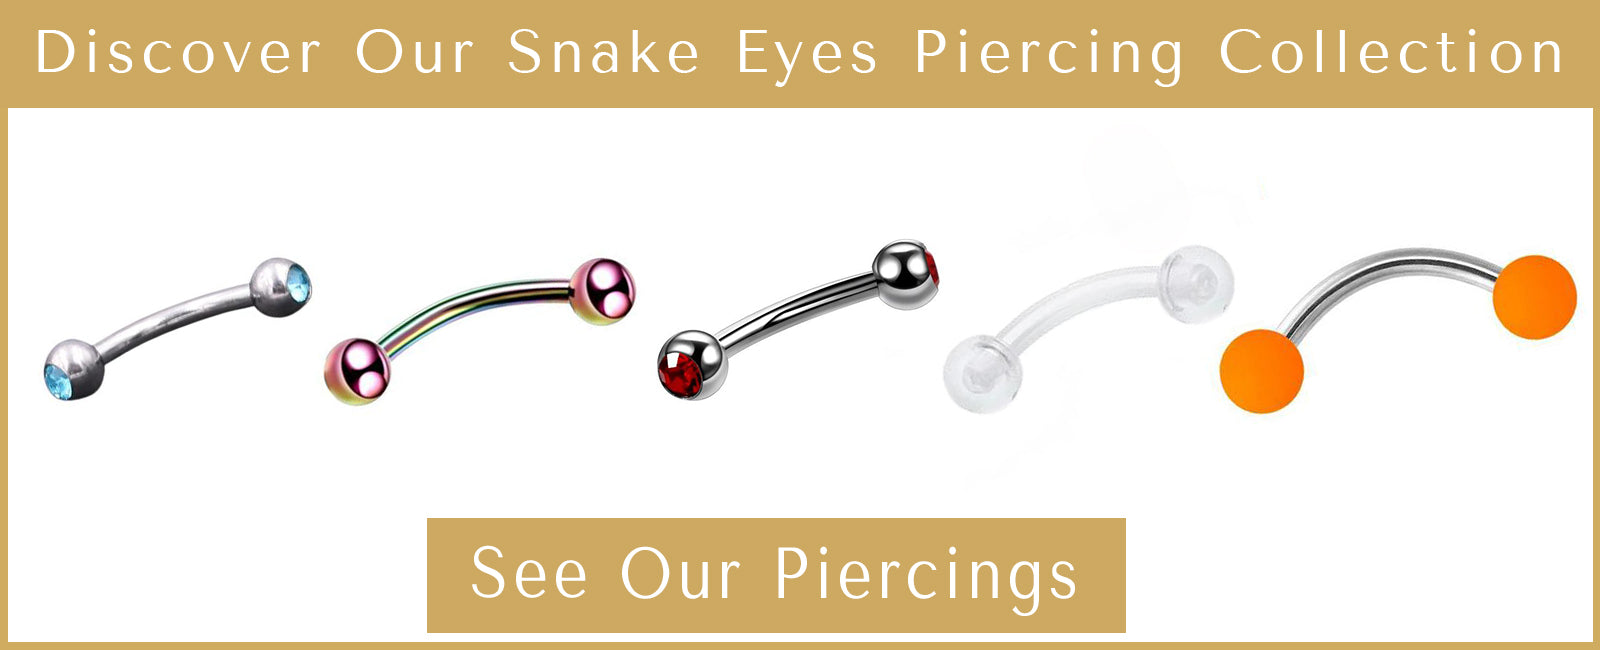 presentation of the collection of snake eyes tongue piercings